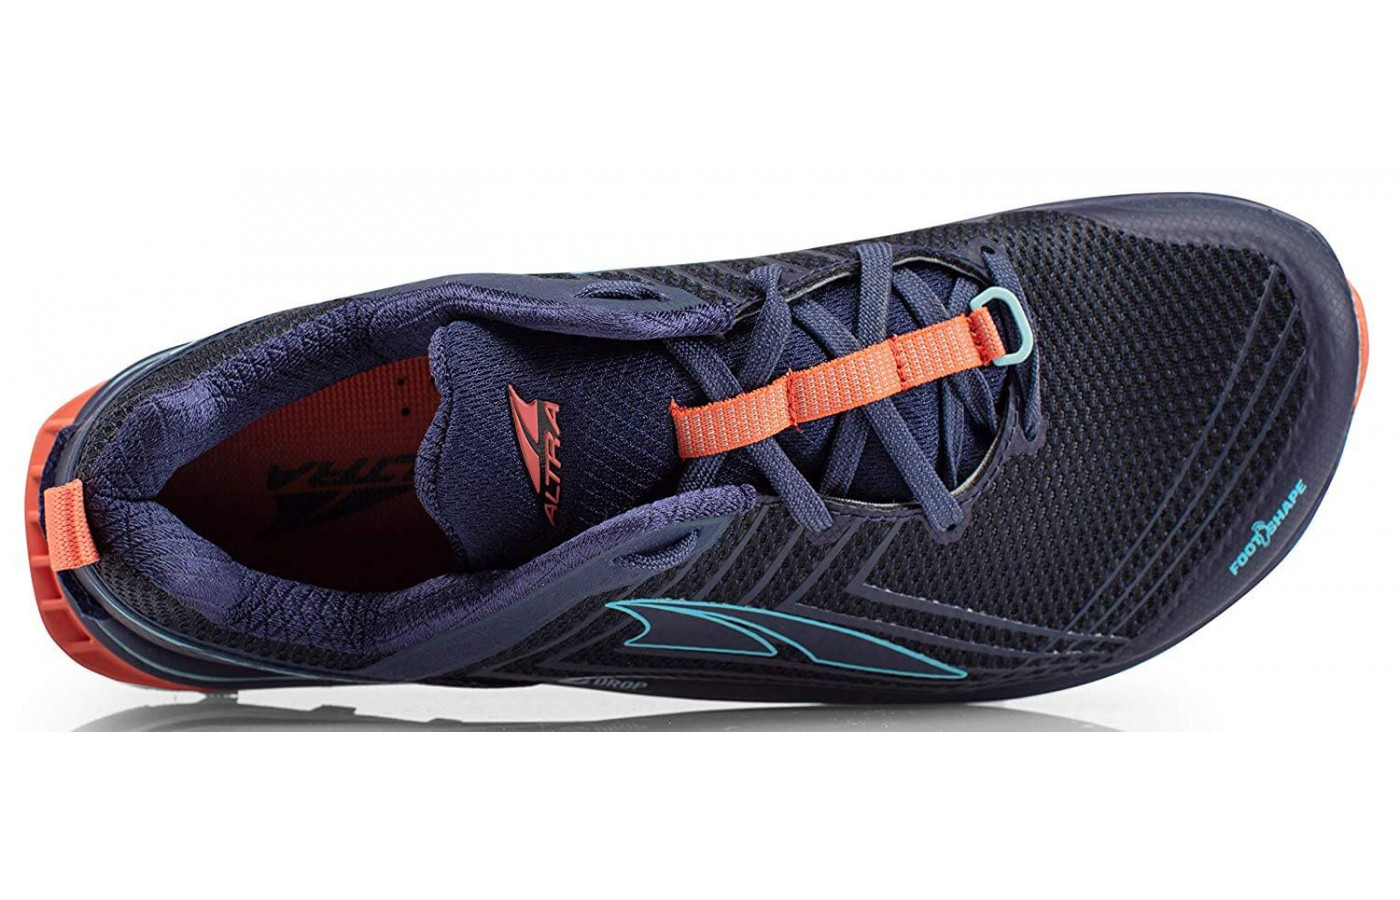 The Timp 1.5's FootShape toe box allows for plenty of toe room and greater stability